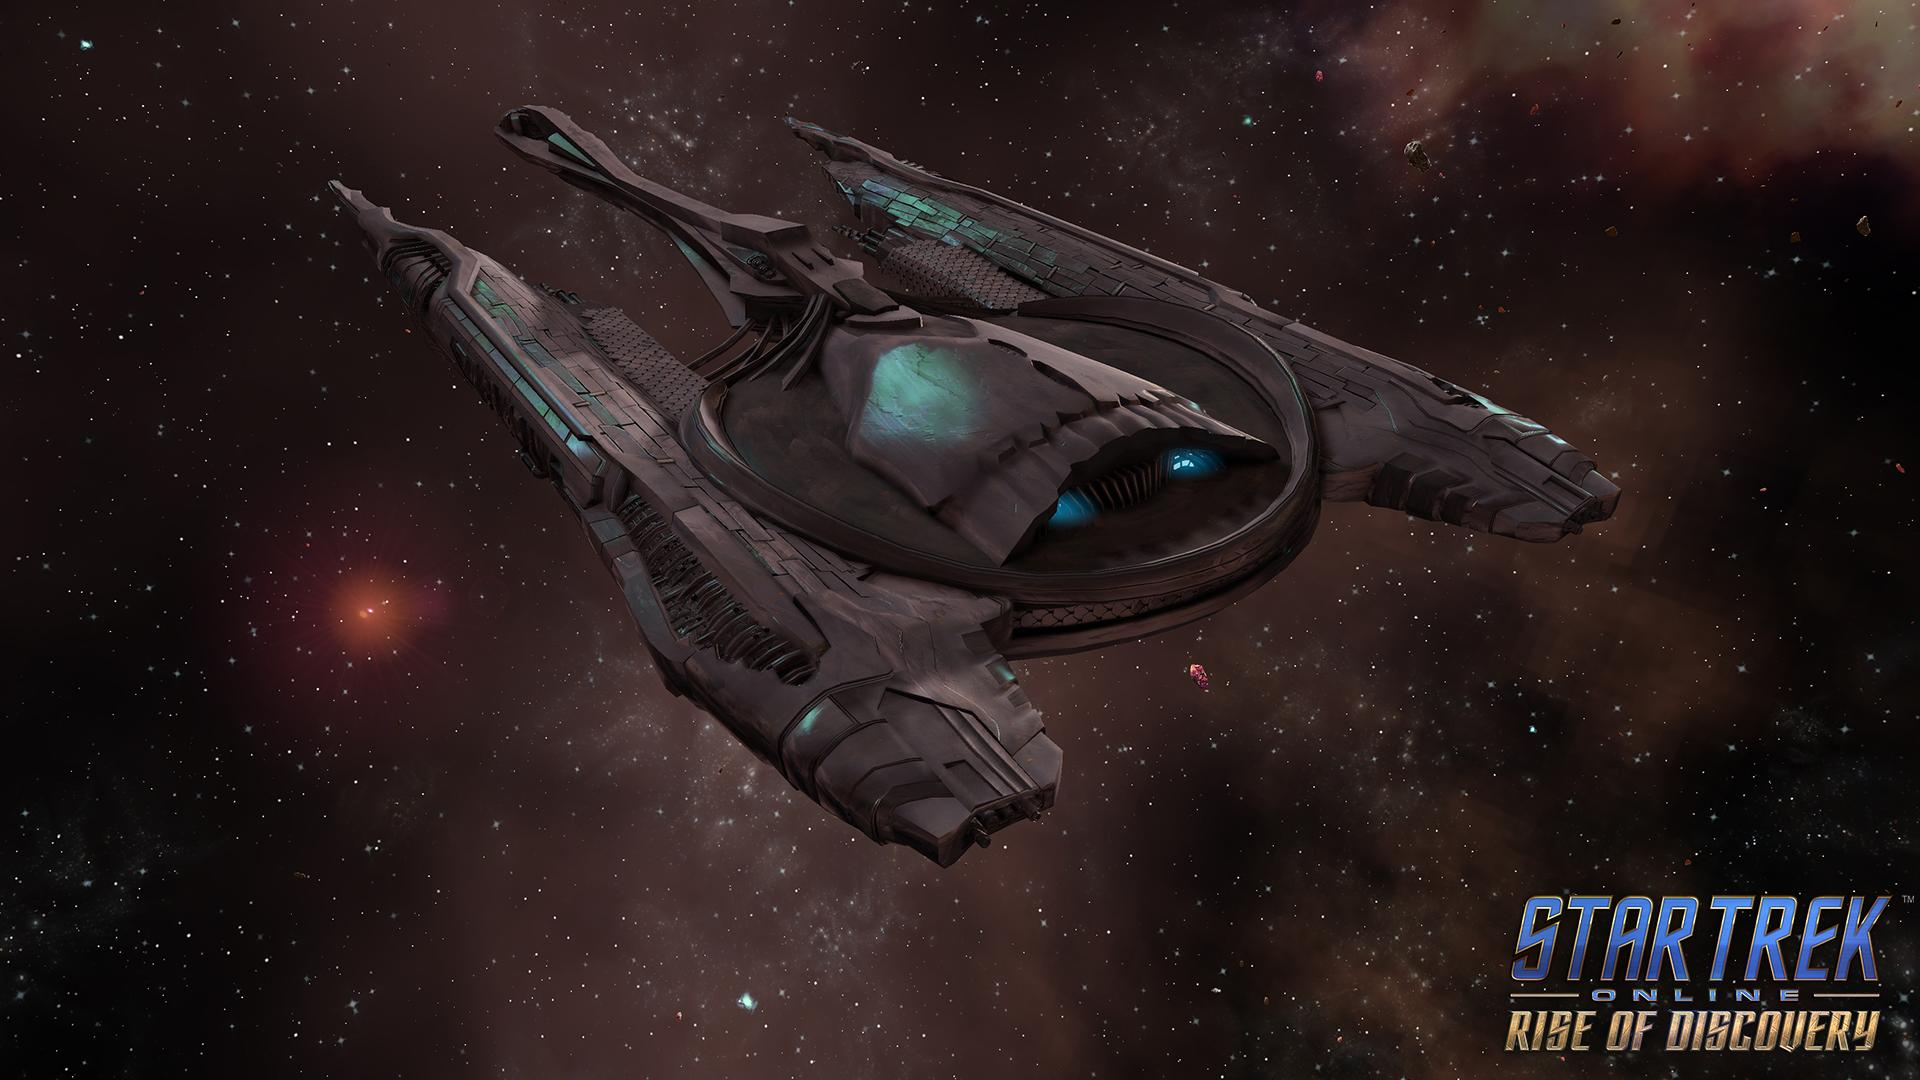 Star Trek Online Rise of Discovery giveaway Qoj Command Dreadnought Cruiser